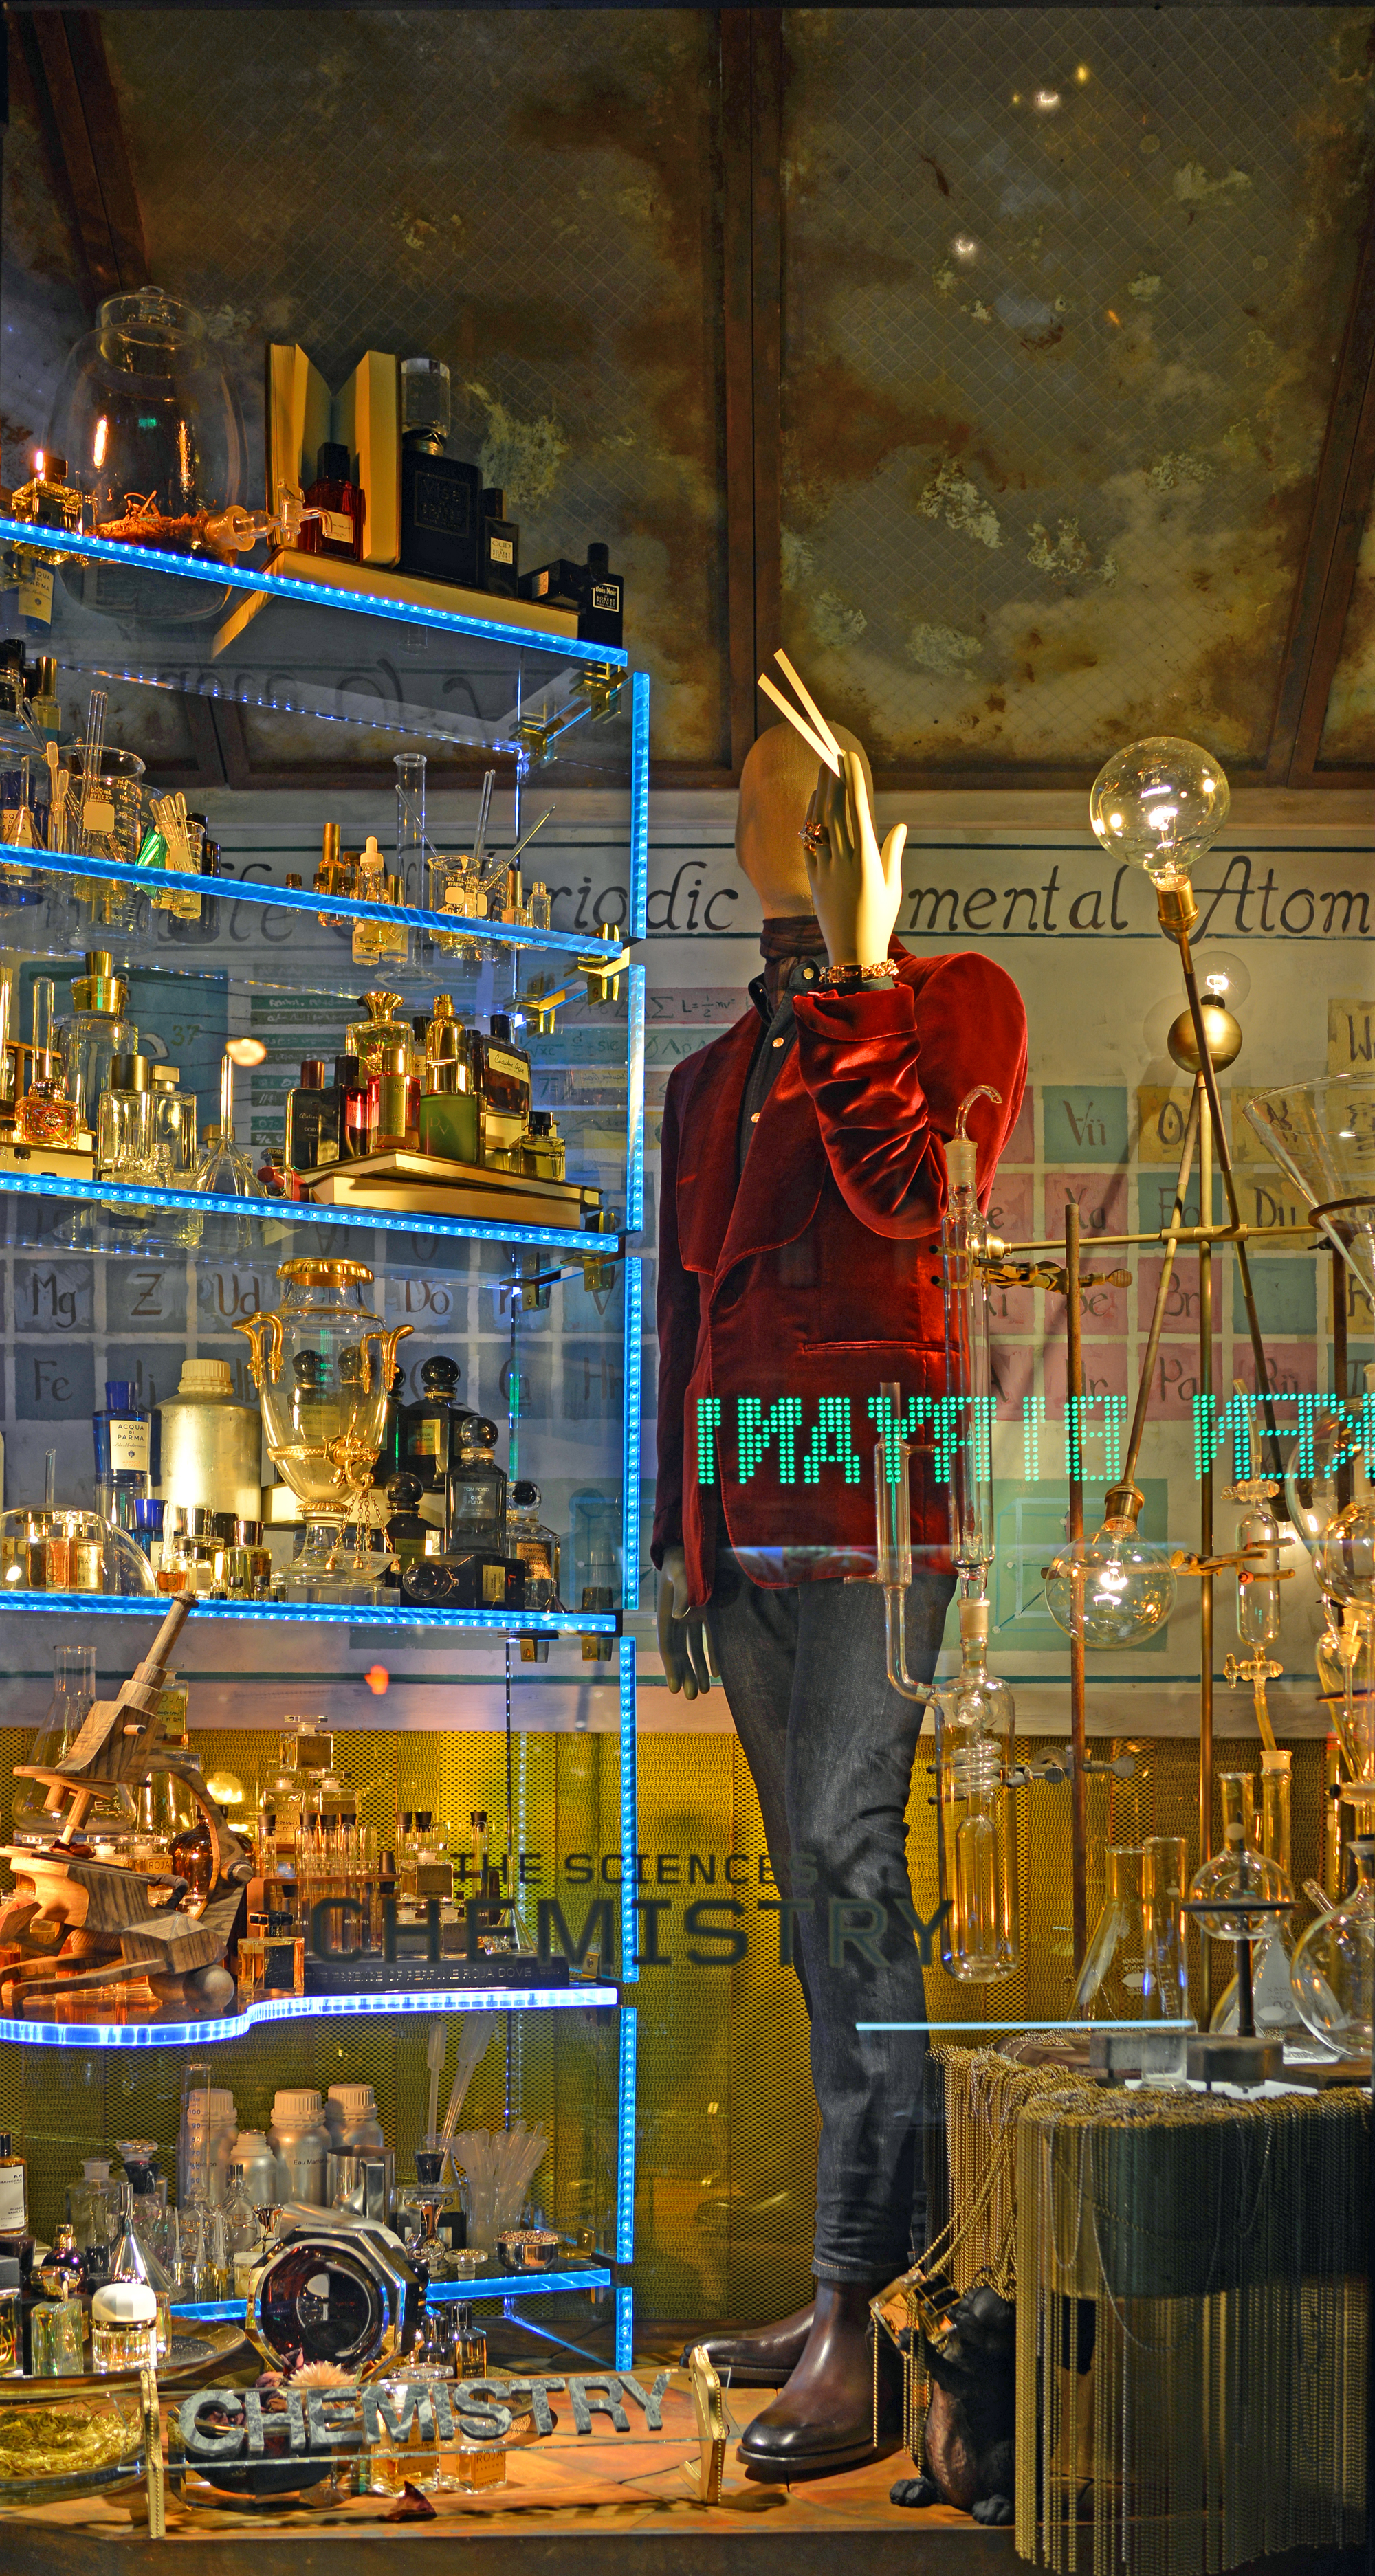 Chemistry Window - Bergdorf Goodman Men's | Lauren L Caron © 2014